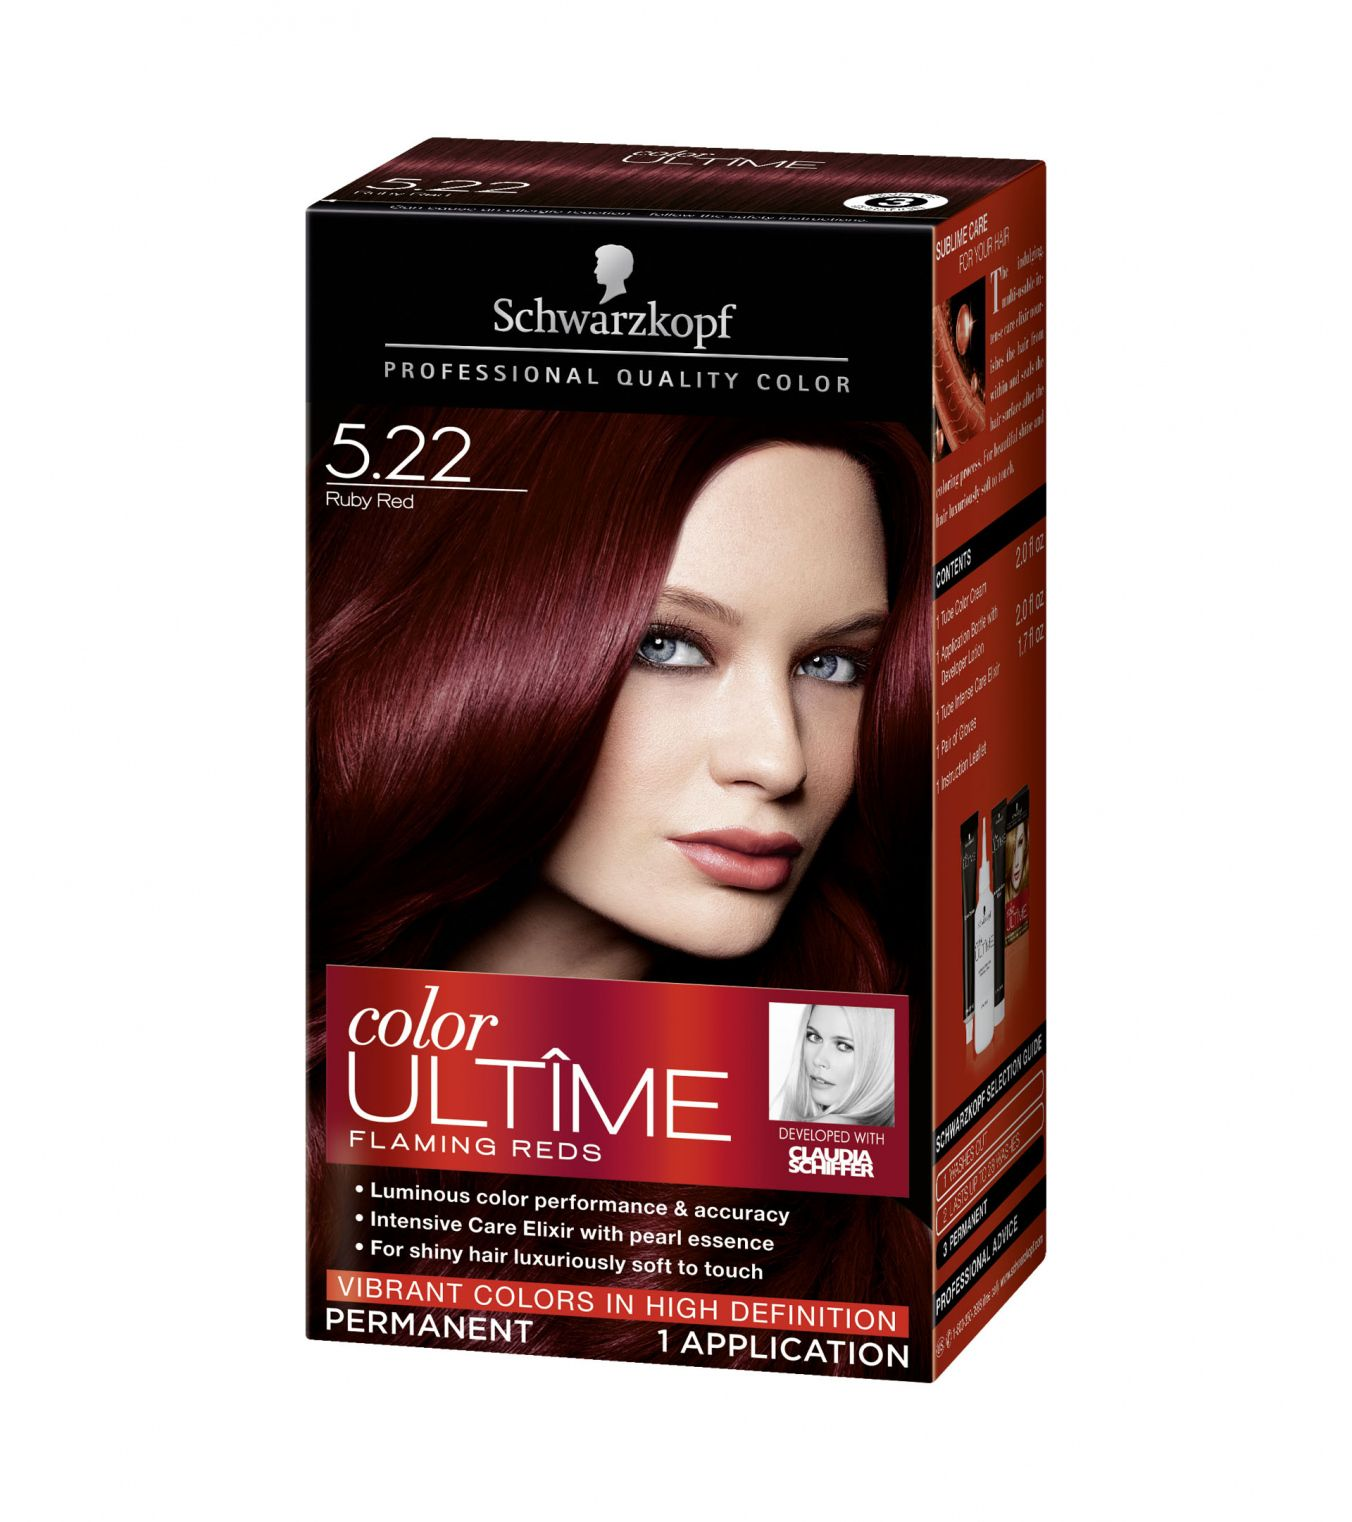 Dark Red Hair Dye Products Best Hair Color Gray Coverage Check More At Http Www Fitnursetaylor C Schwarzkopf Hair Color Schwarzkopf Color Ultime Hair Color